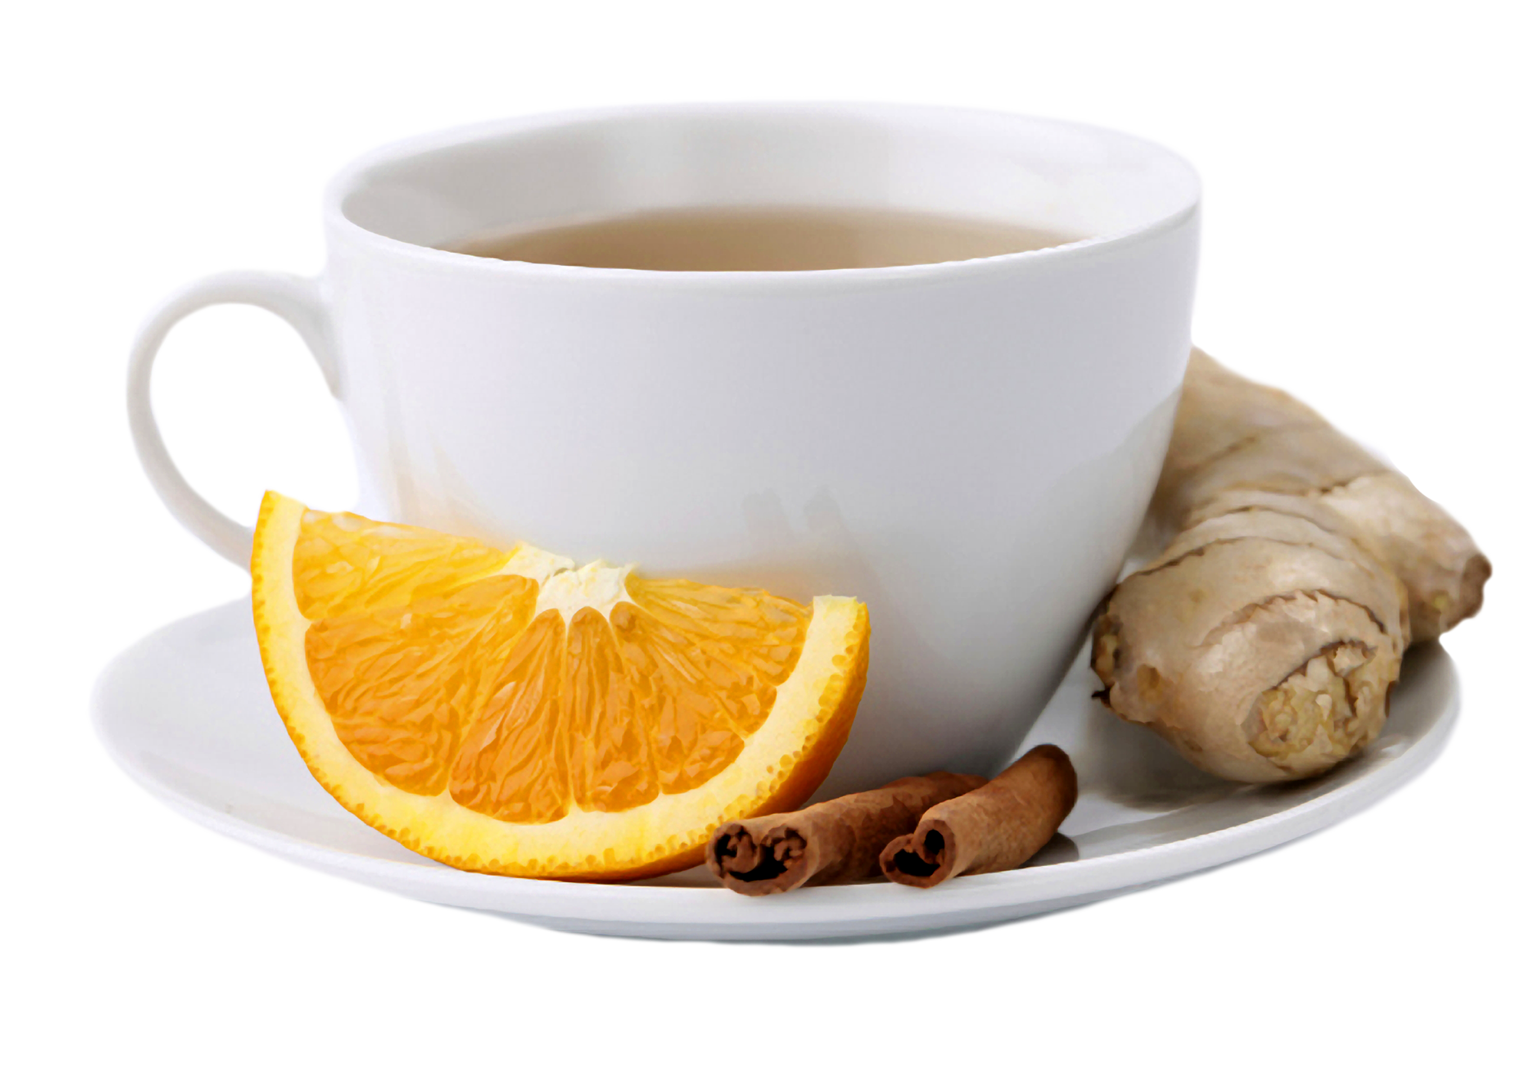 Cup of tea png. Green mages herbal images